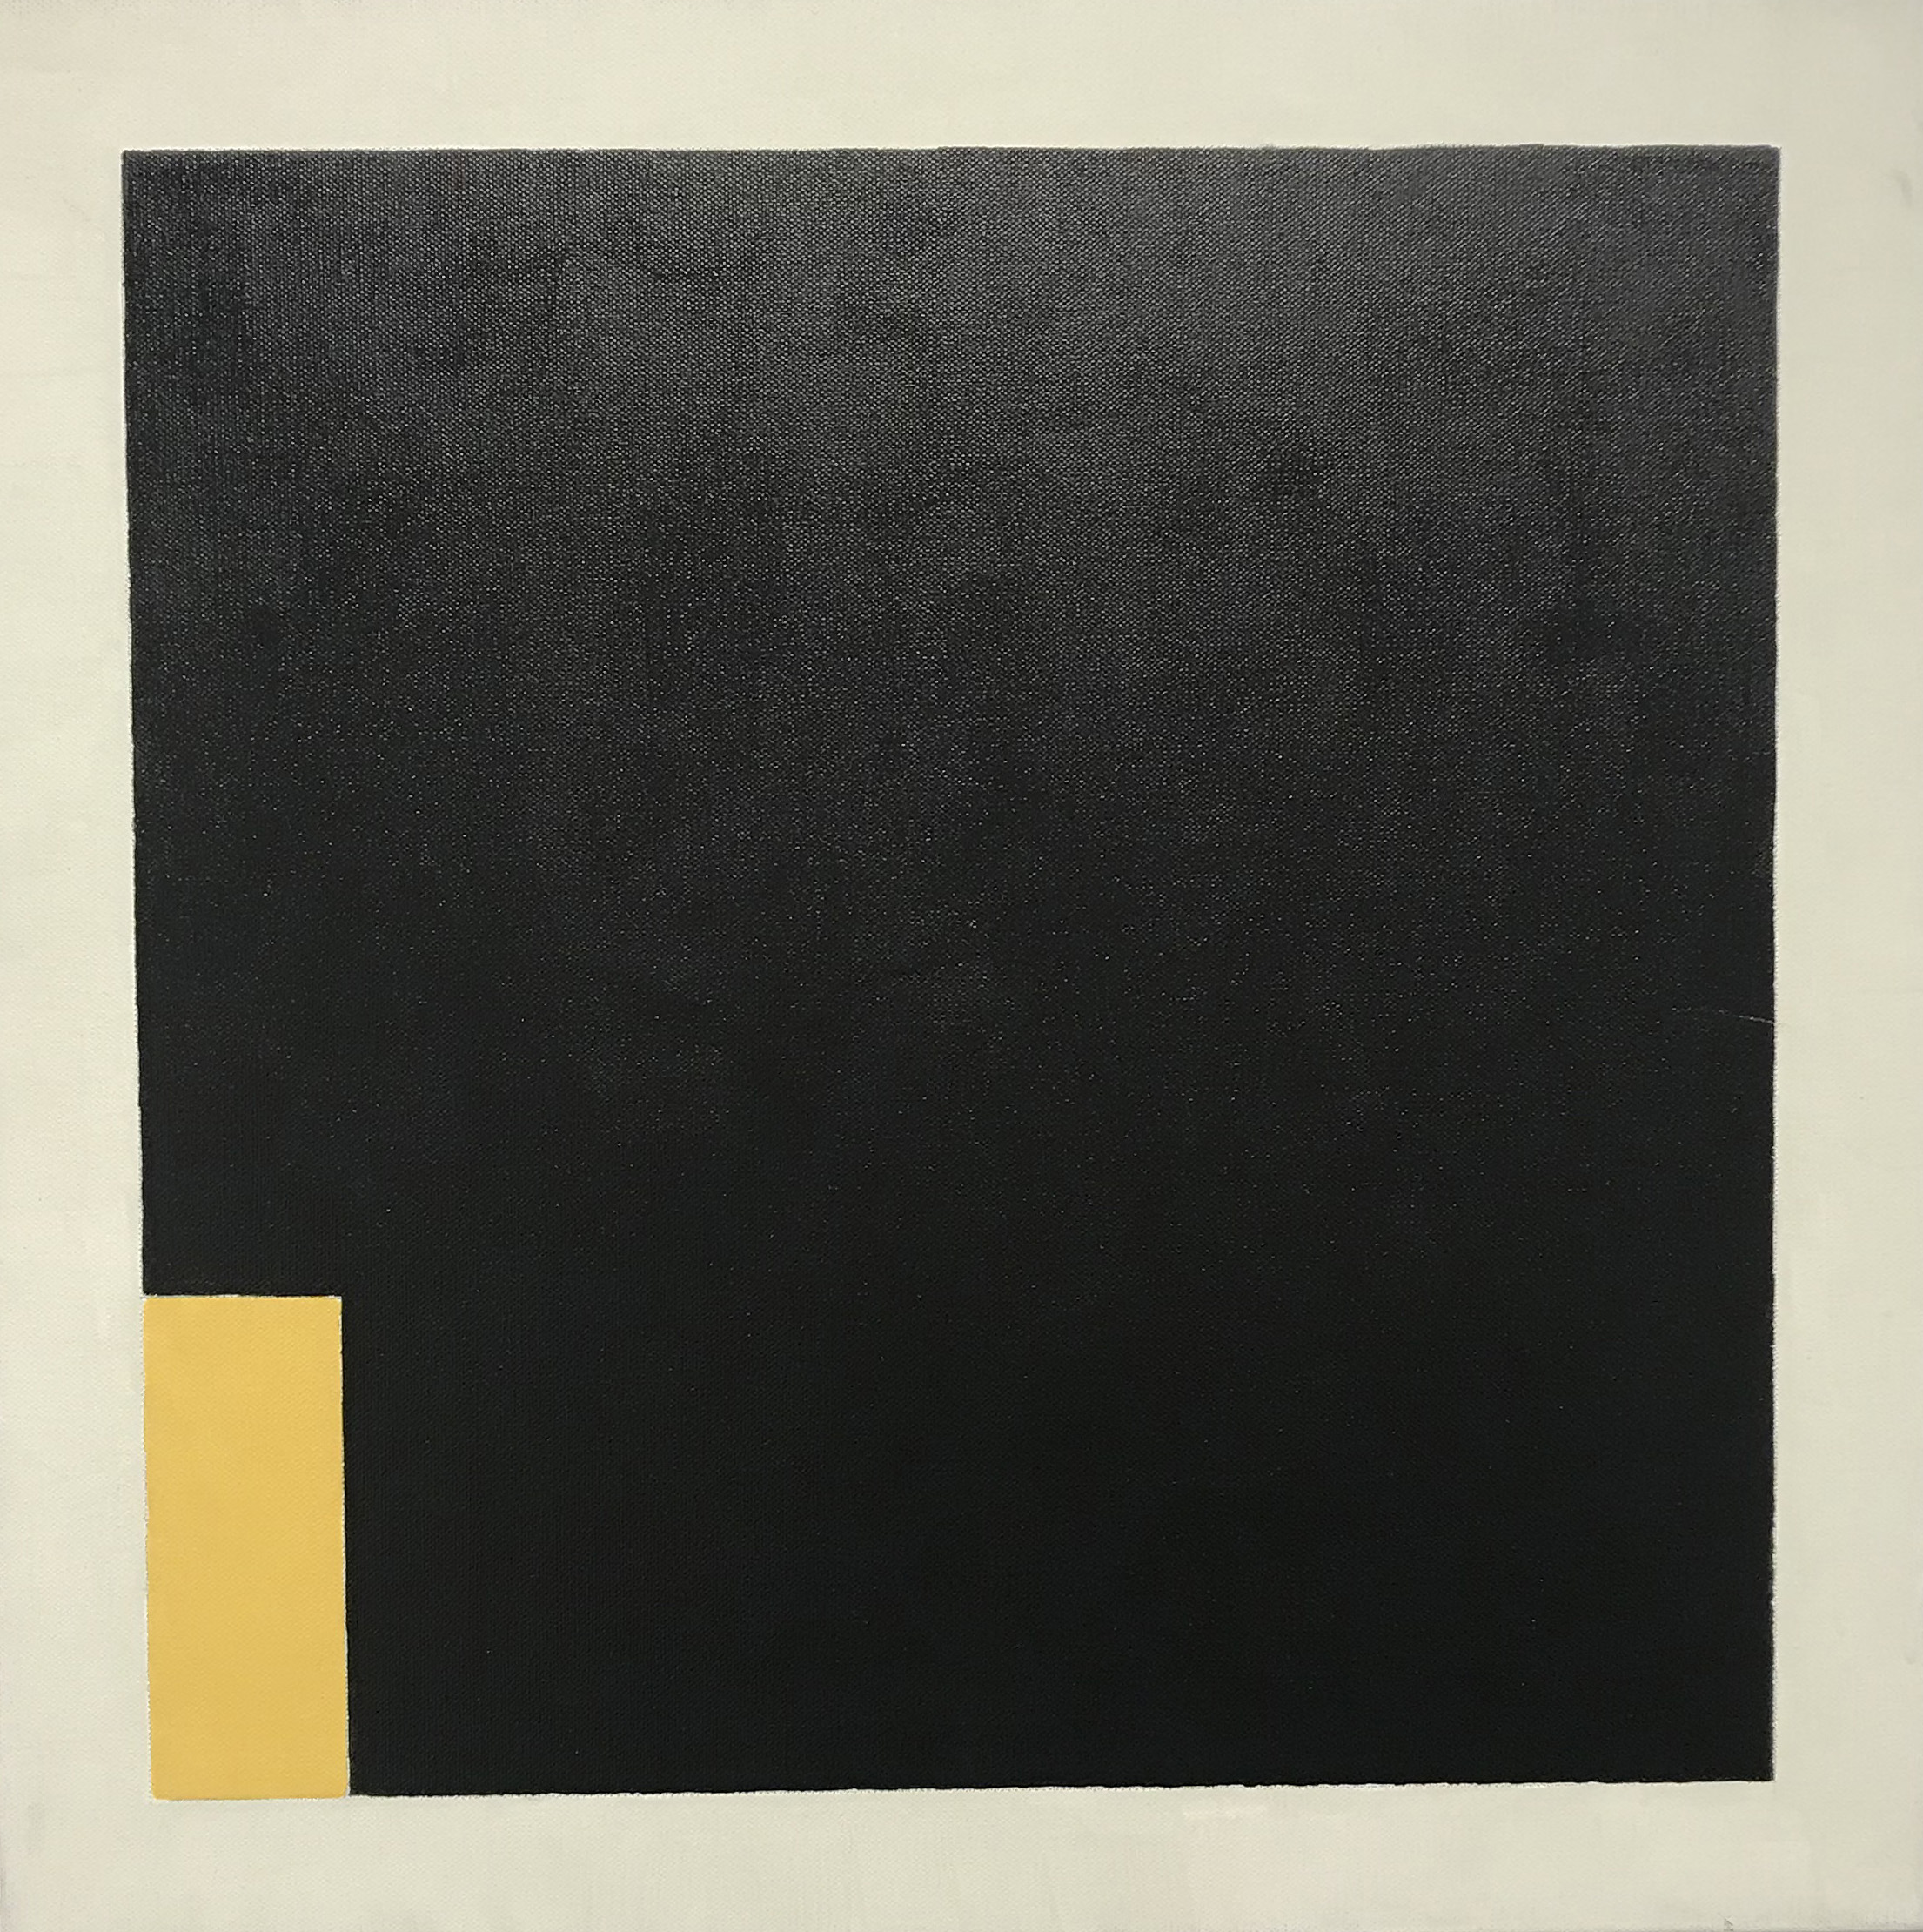 untitled  (LK18.005), 2018 acrylic on canvas 19 3/4 x 19 3/4 inches